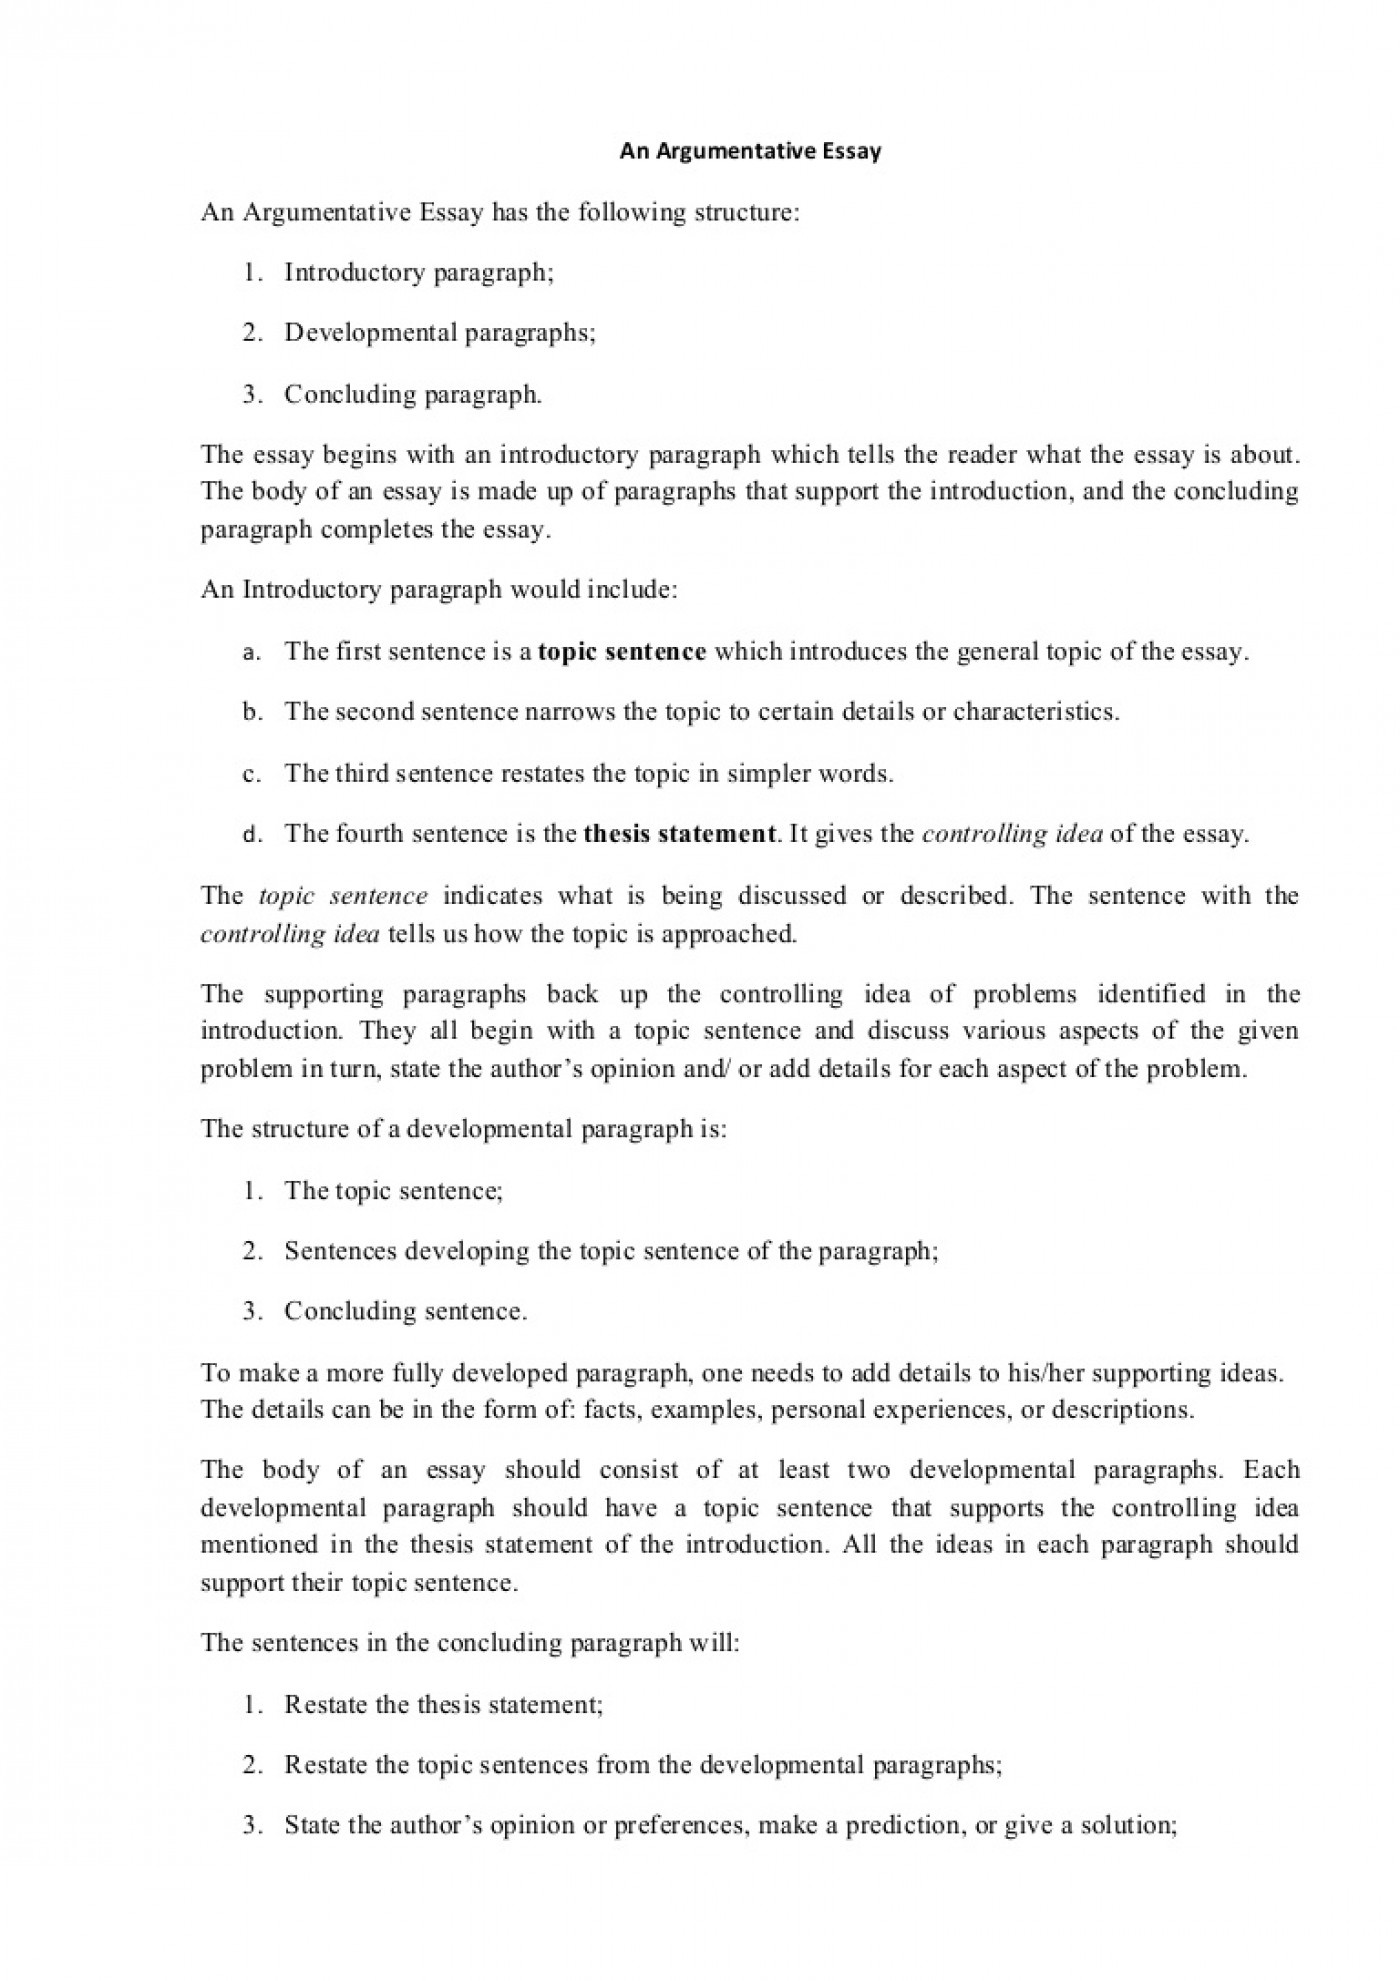 014 Example Of Argumentative Essay Conclusion Argumentativeessaystructure Phpapp01 Thumbnail Beautiful Introduction Body And 1400